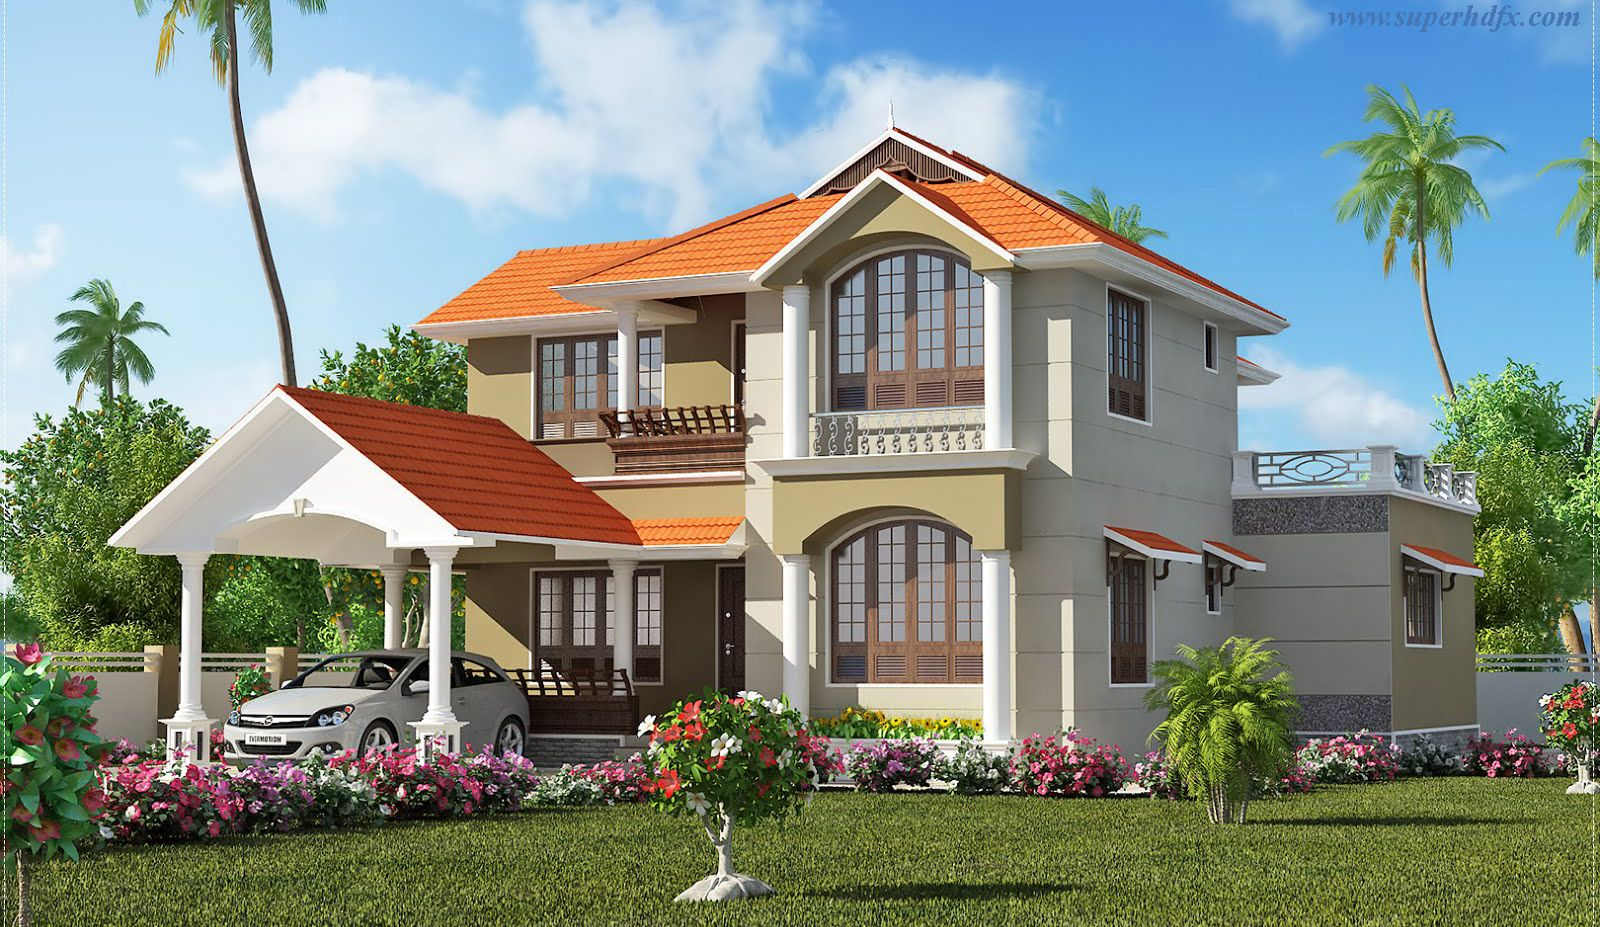 House Beautiful Wallpaper collections of beutiful house, - free home designs photos ideas